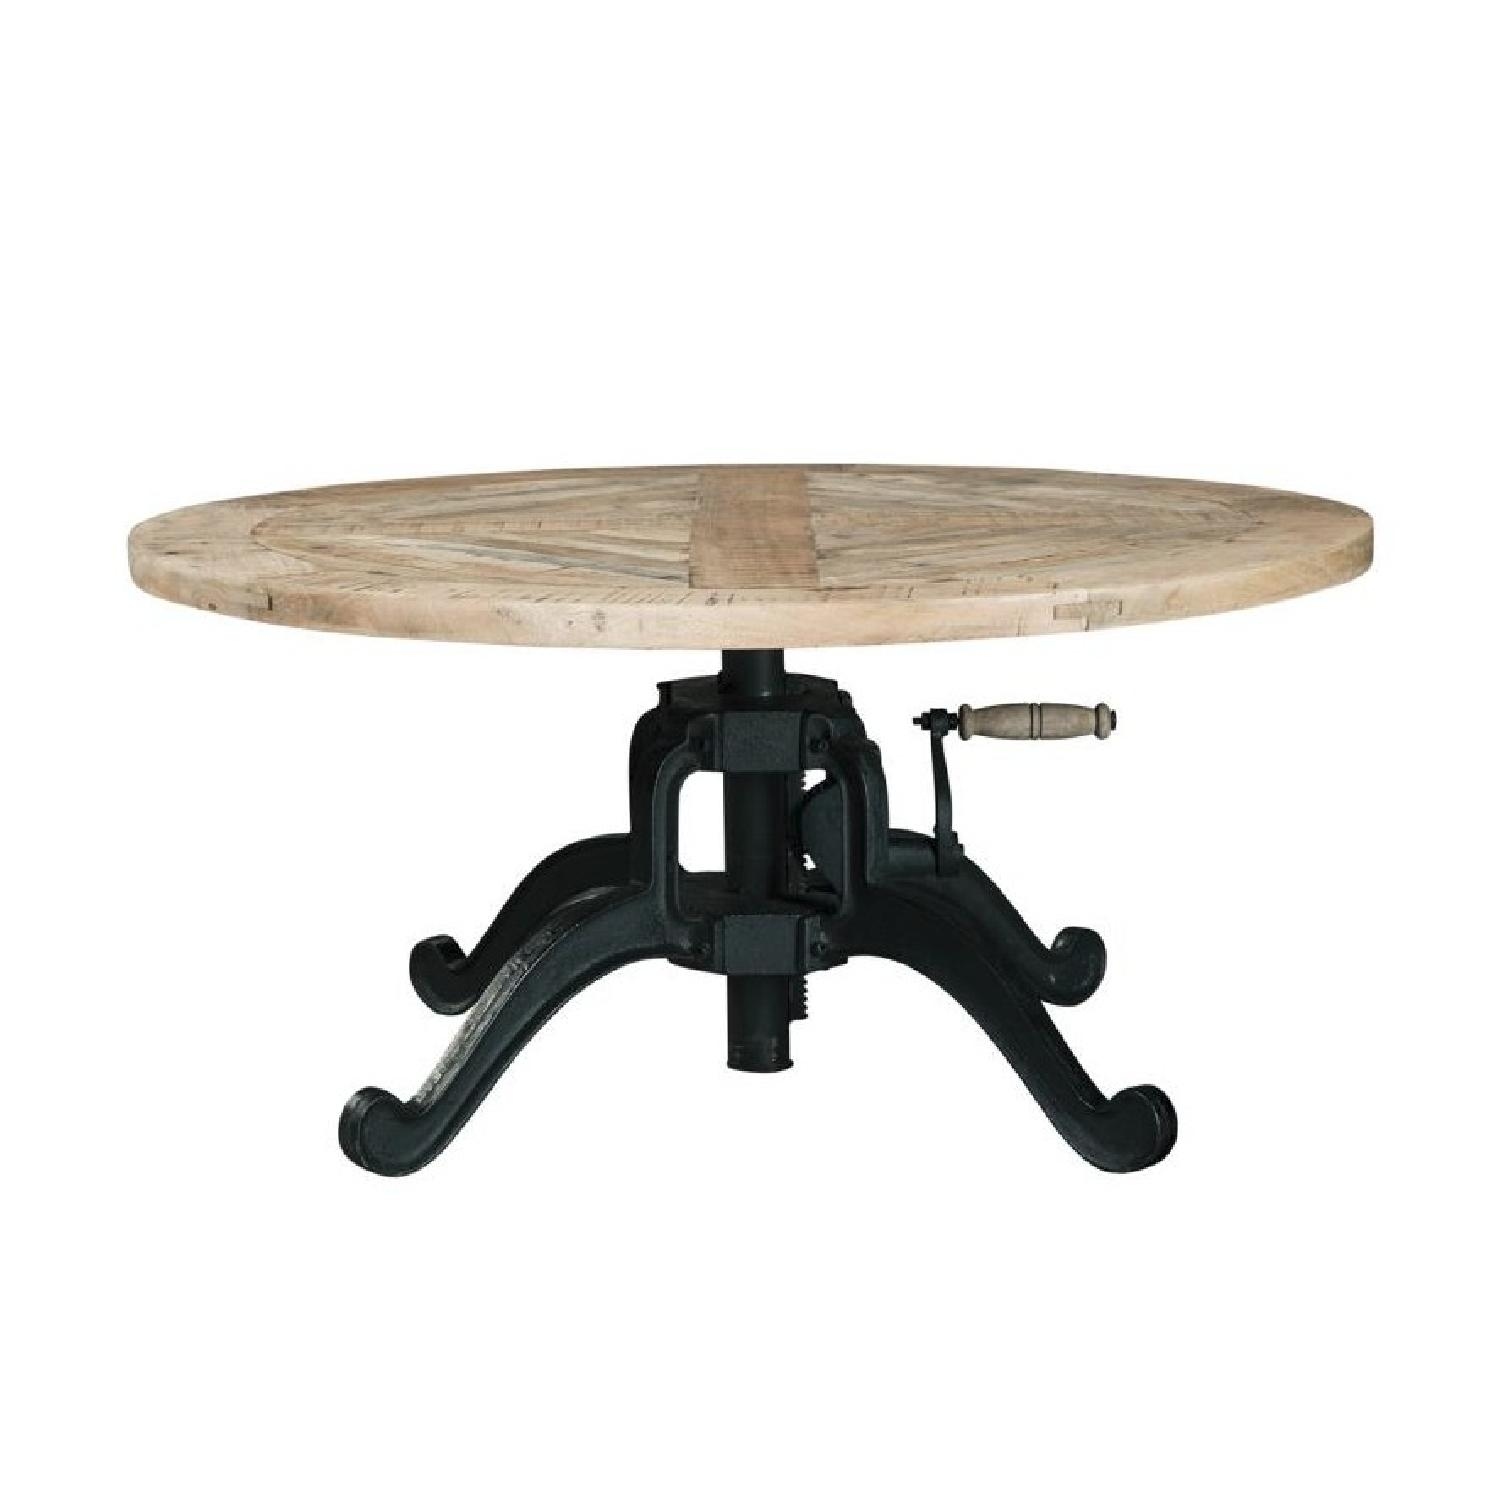 Height Adjustable Round Coffee Table w/ Crank Handle